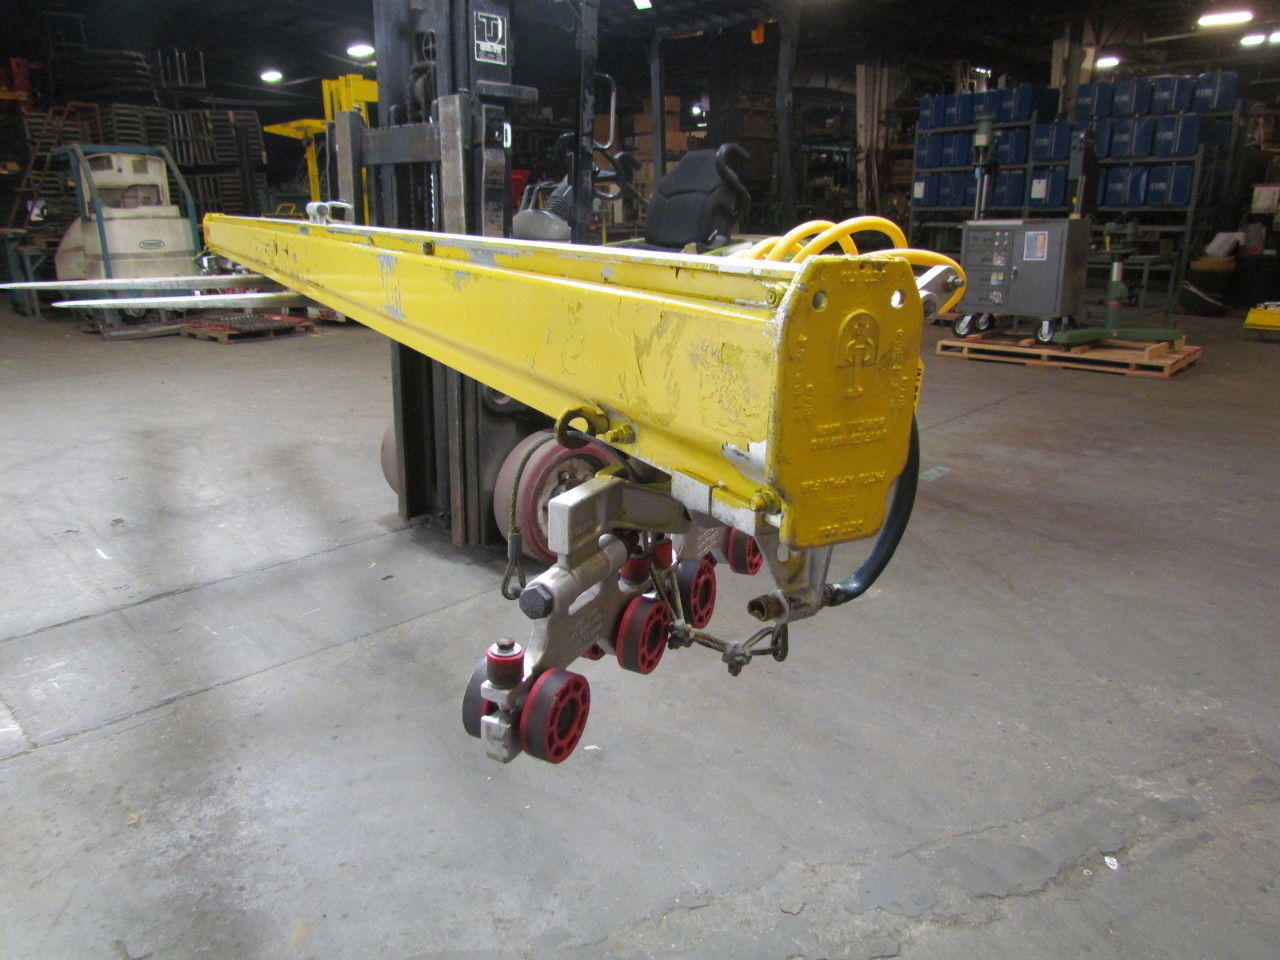 Royal ARC / Unified Overhead Crane Rail 18' Section w/ 1000# Capacity Trolleys